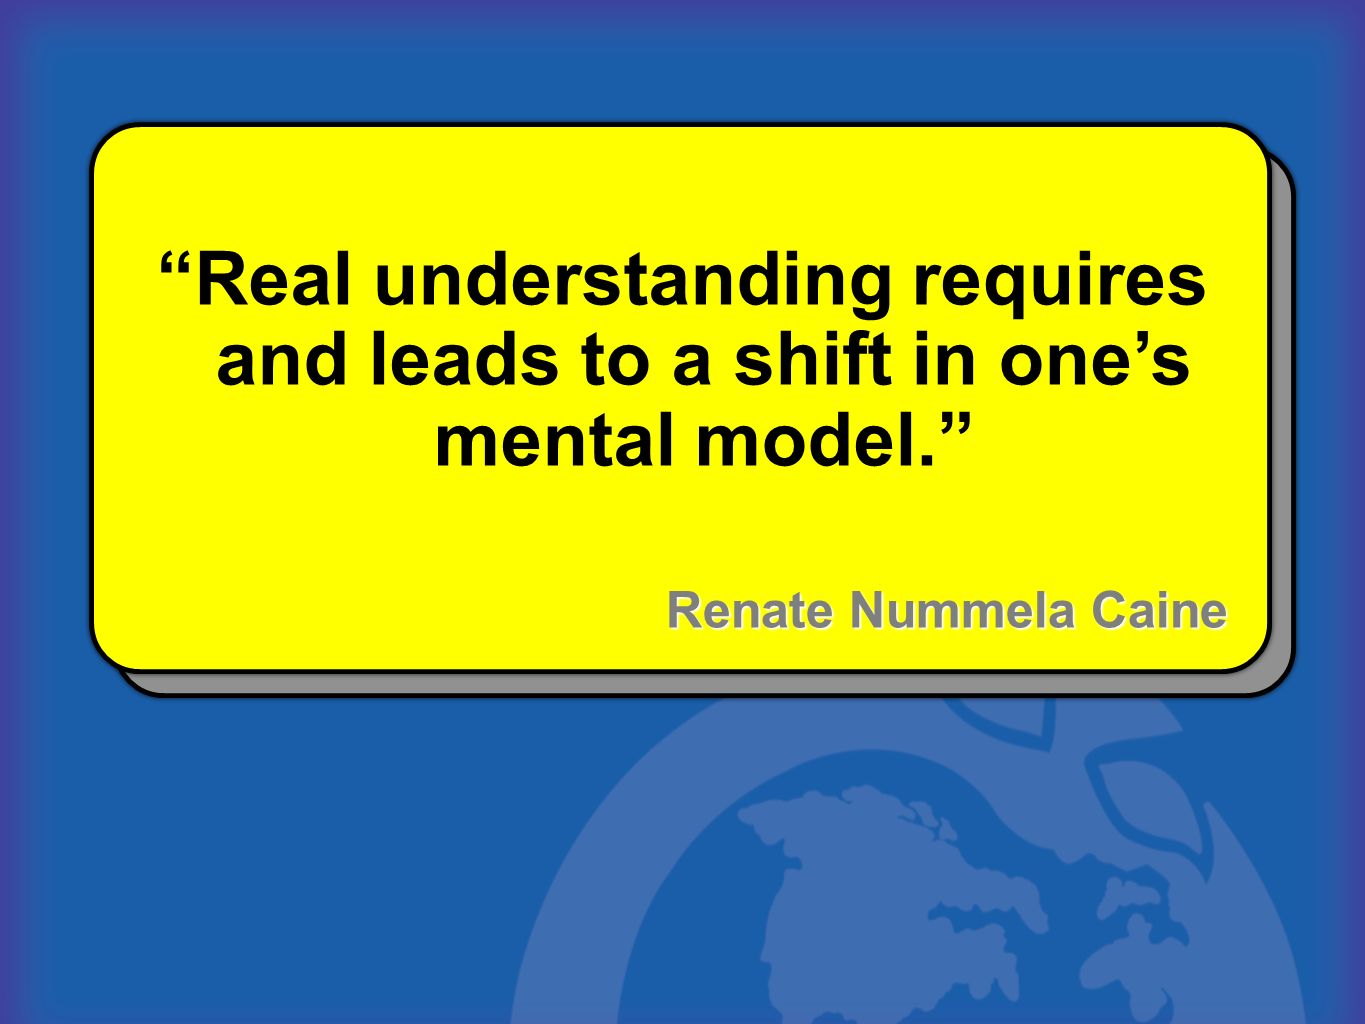 Real understanding requires and leads to a shift in one's mental model.